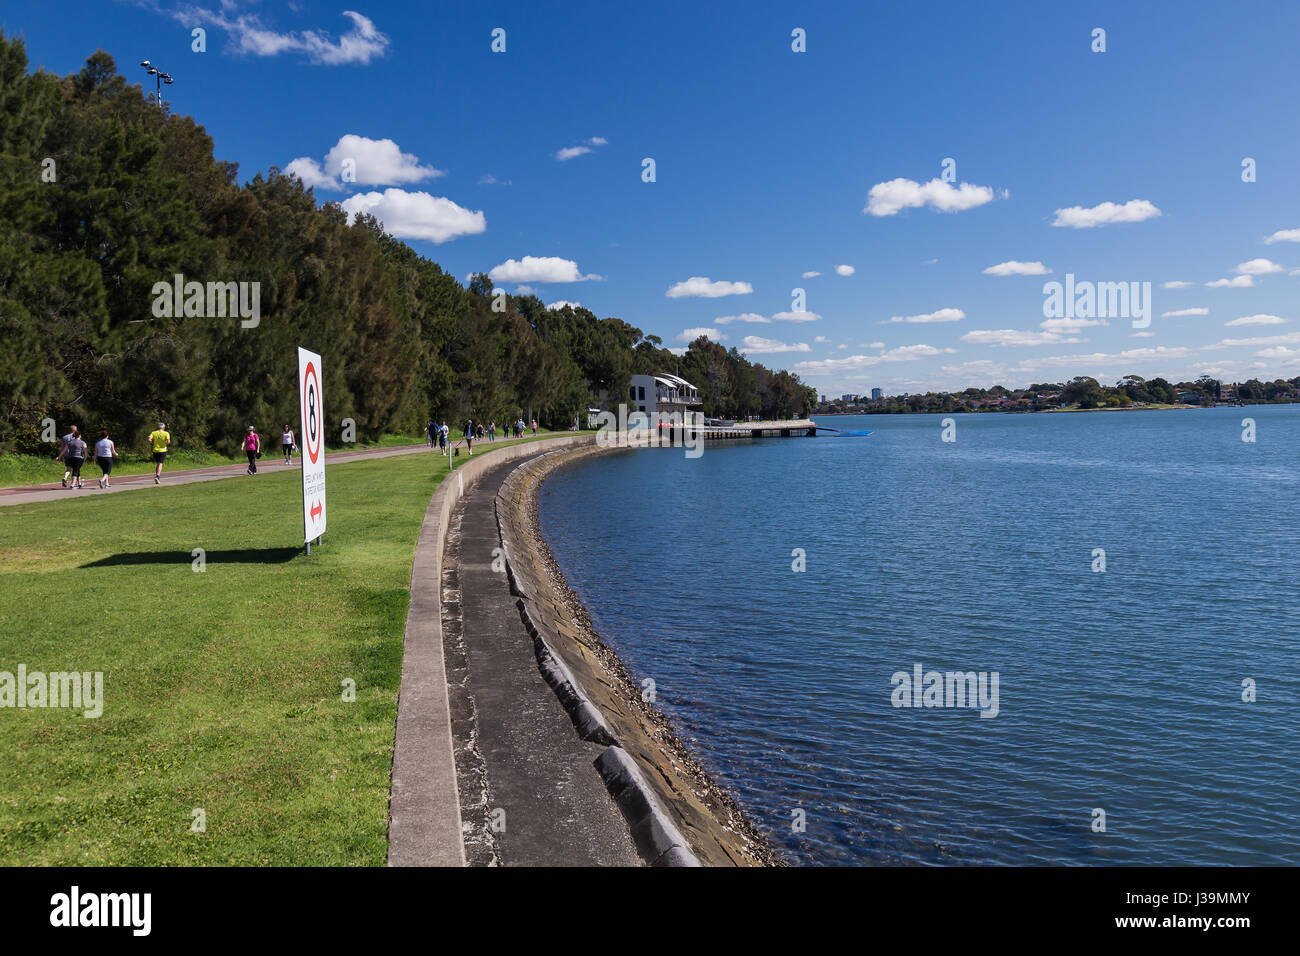 View of King George Park, Rozelle, Sydney. - Stock Image